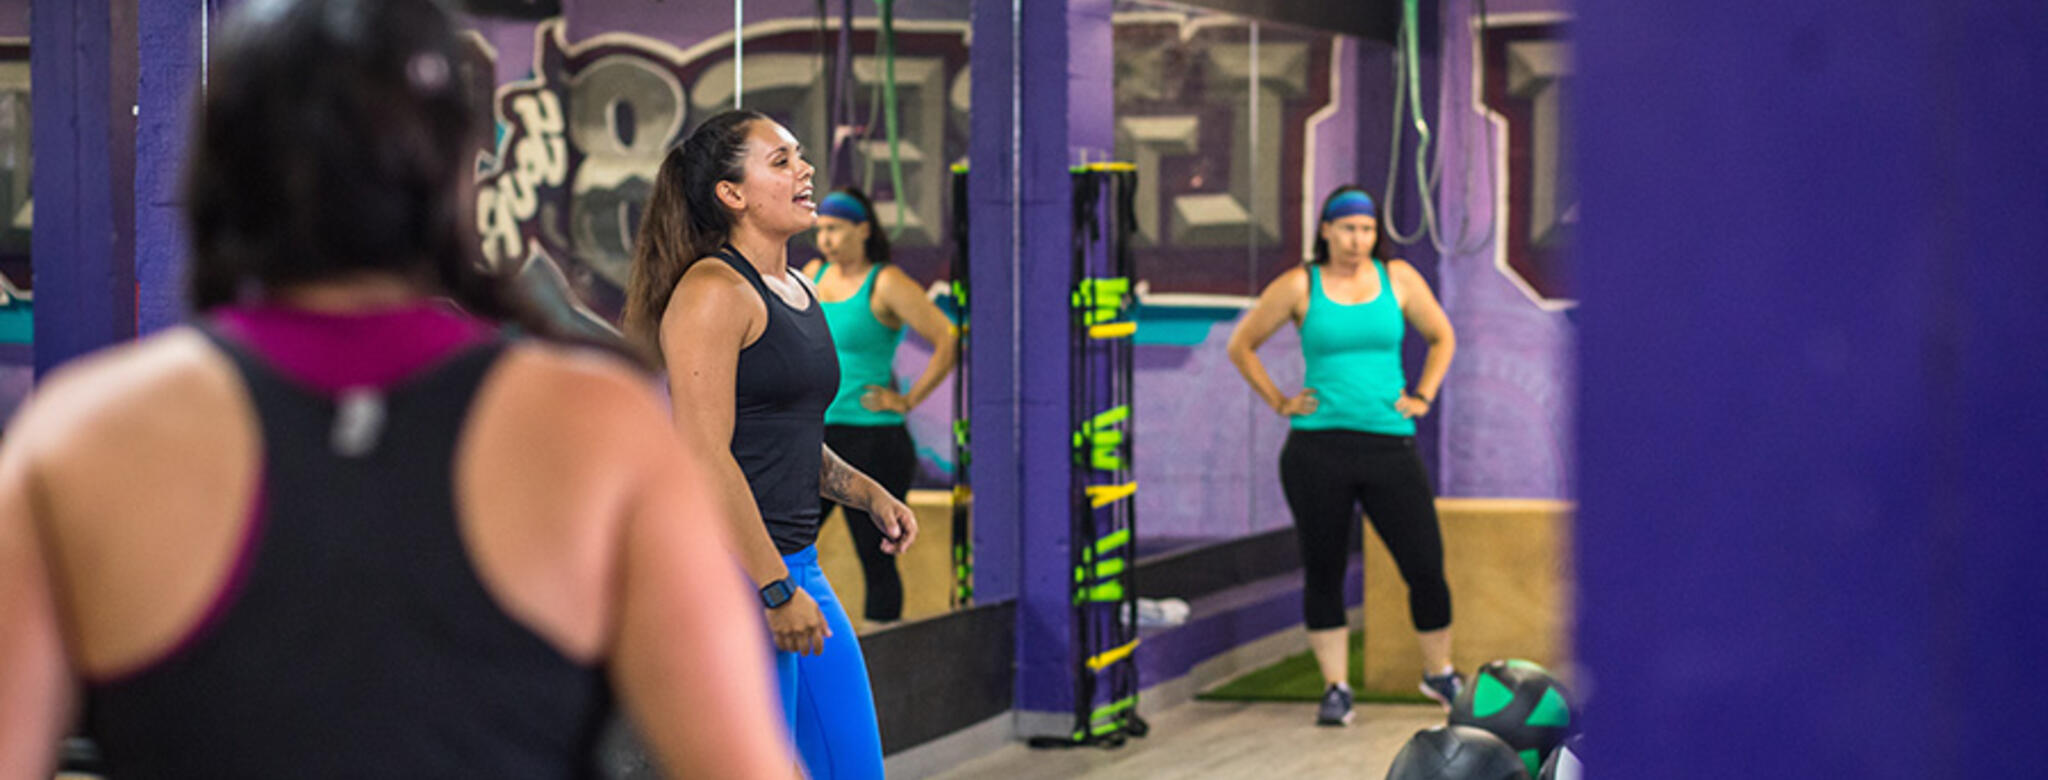 A class at Liber8Fit Underground in San Diego, CA